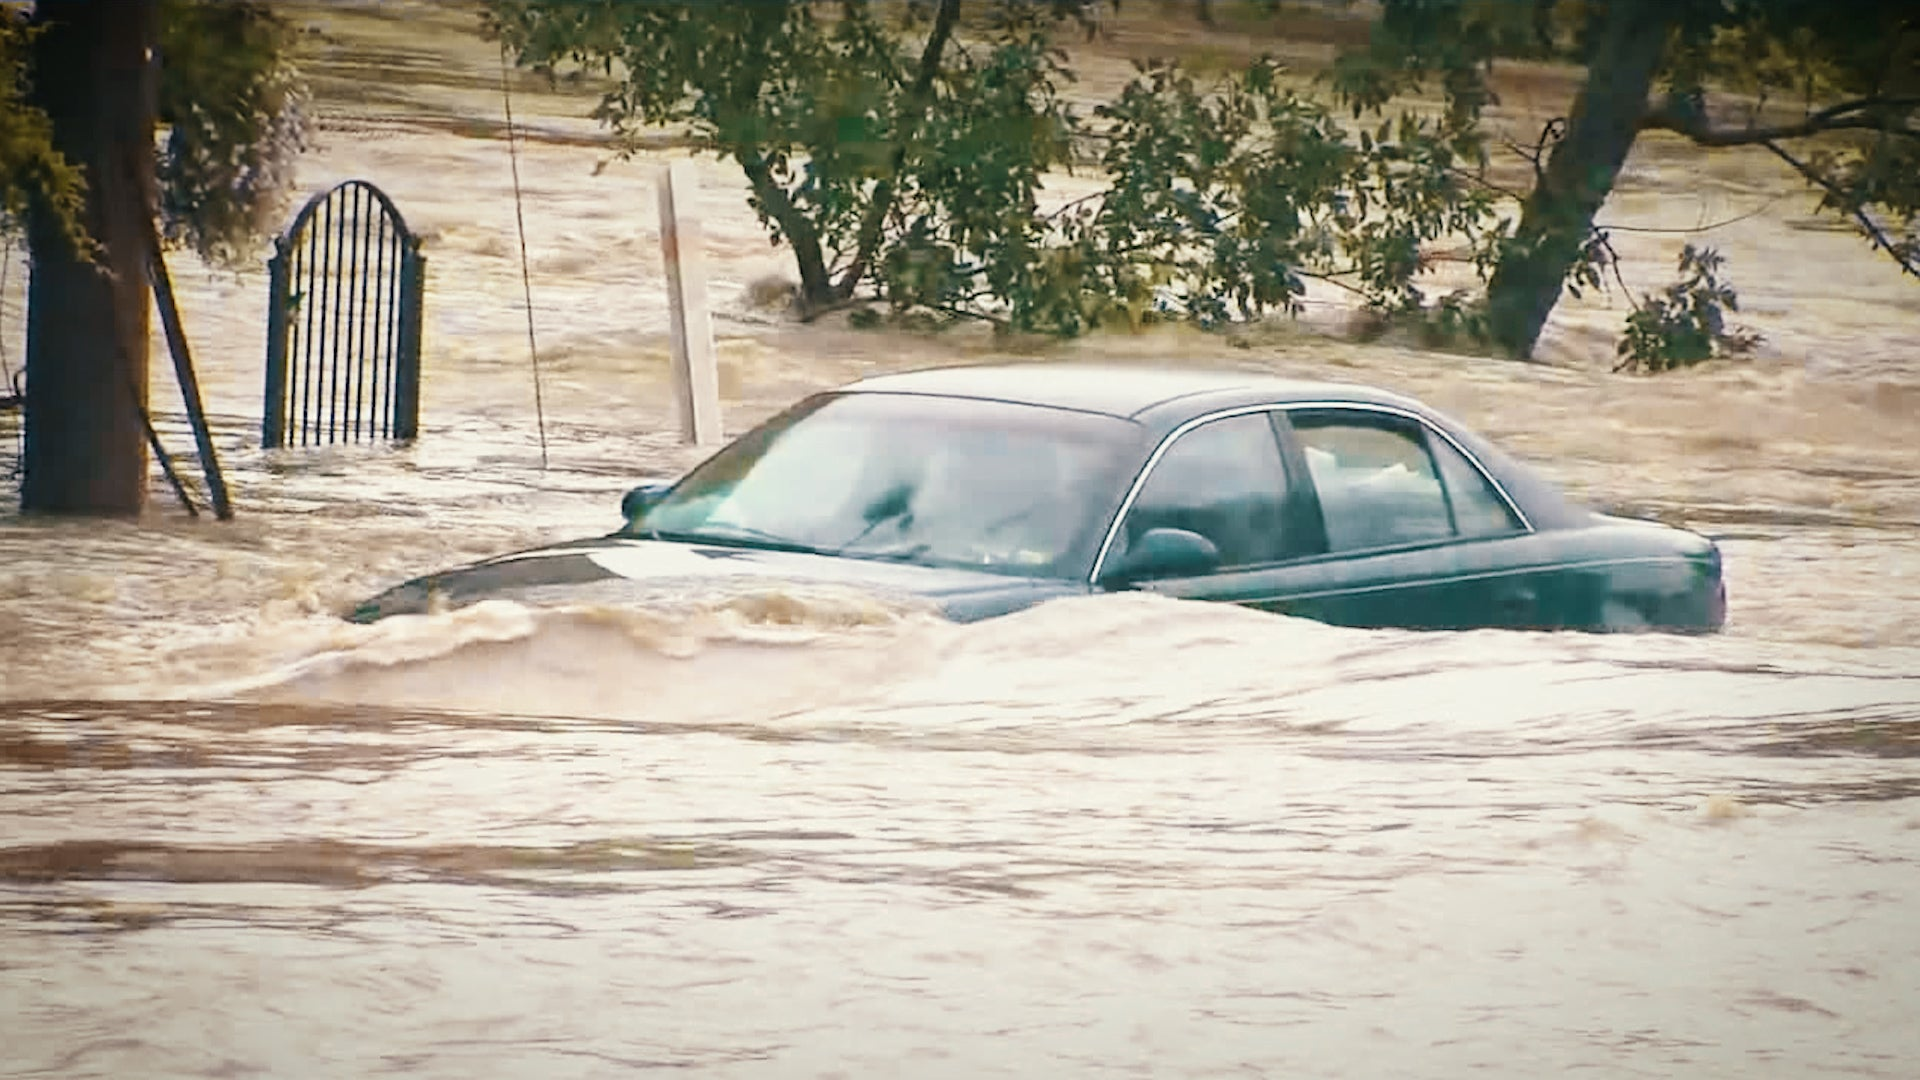 Flooding Facts That Might Surprise or Even Save You